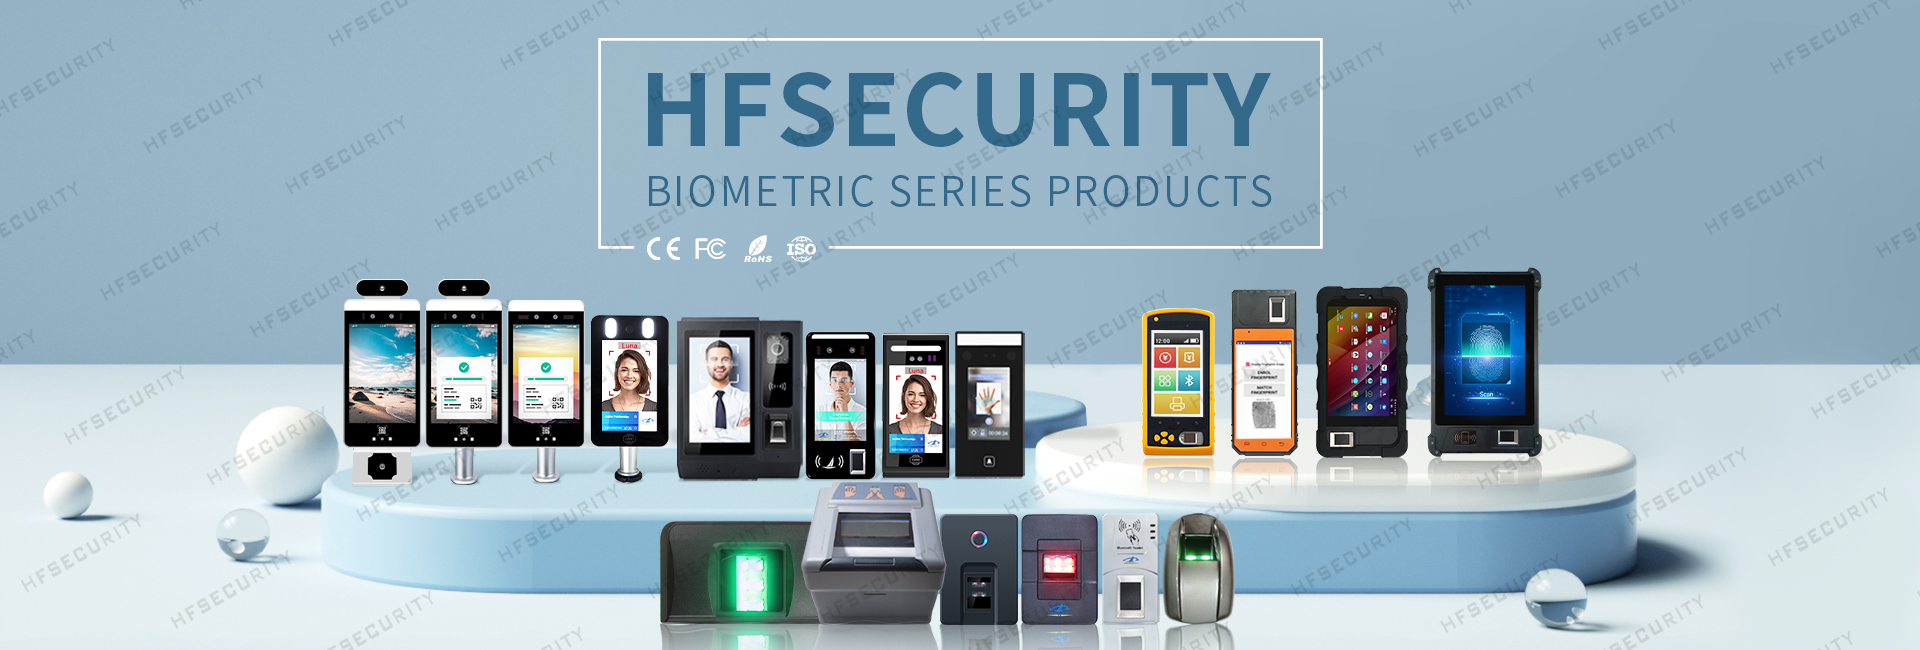 HFSecurity 8 inch Biometric Tablet Device